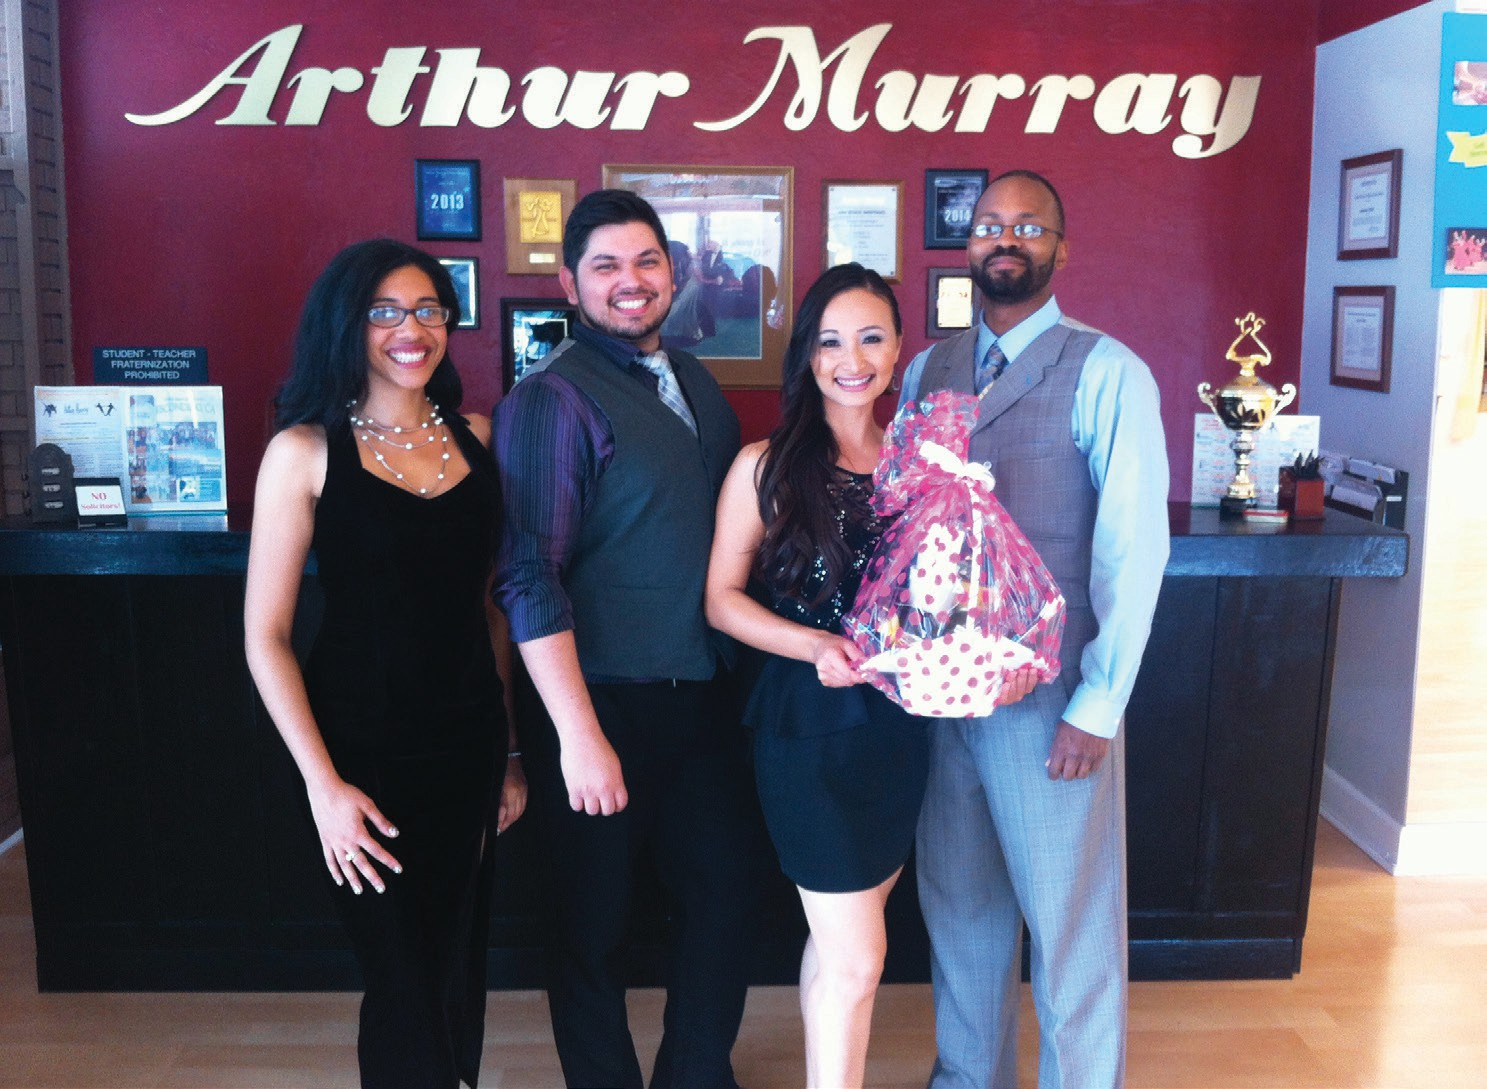 Autumn Dinh, owner of the Escondido Arthur Murray Dance Studio, and her staff of dance teachers, Domonique Dawson, Juan Galindo and Kristen Ortiz.